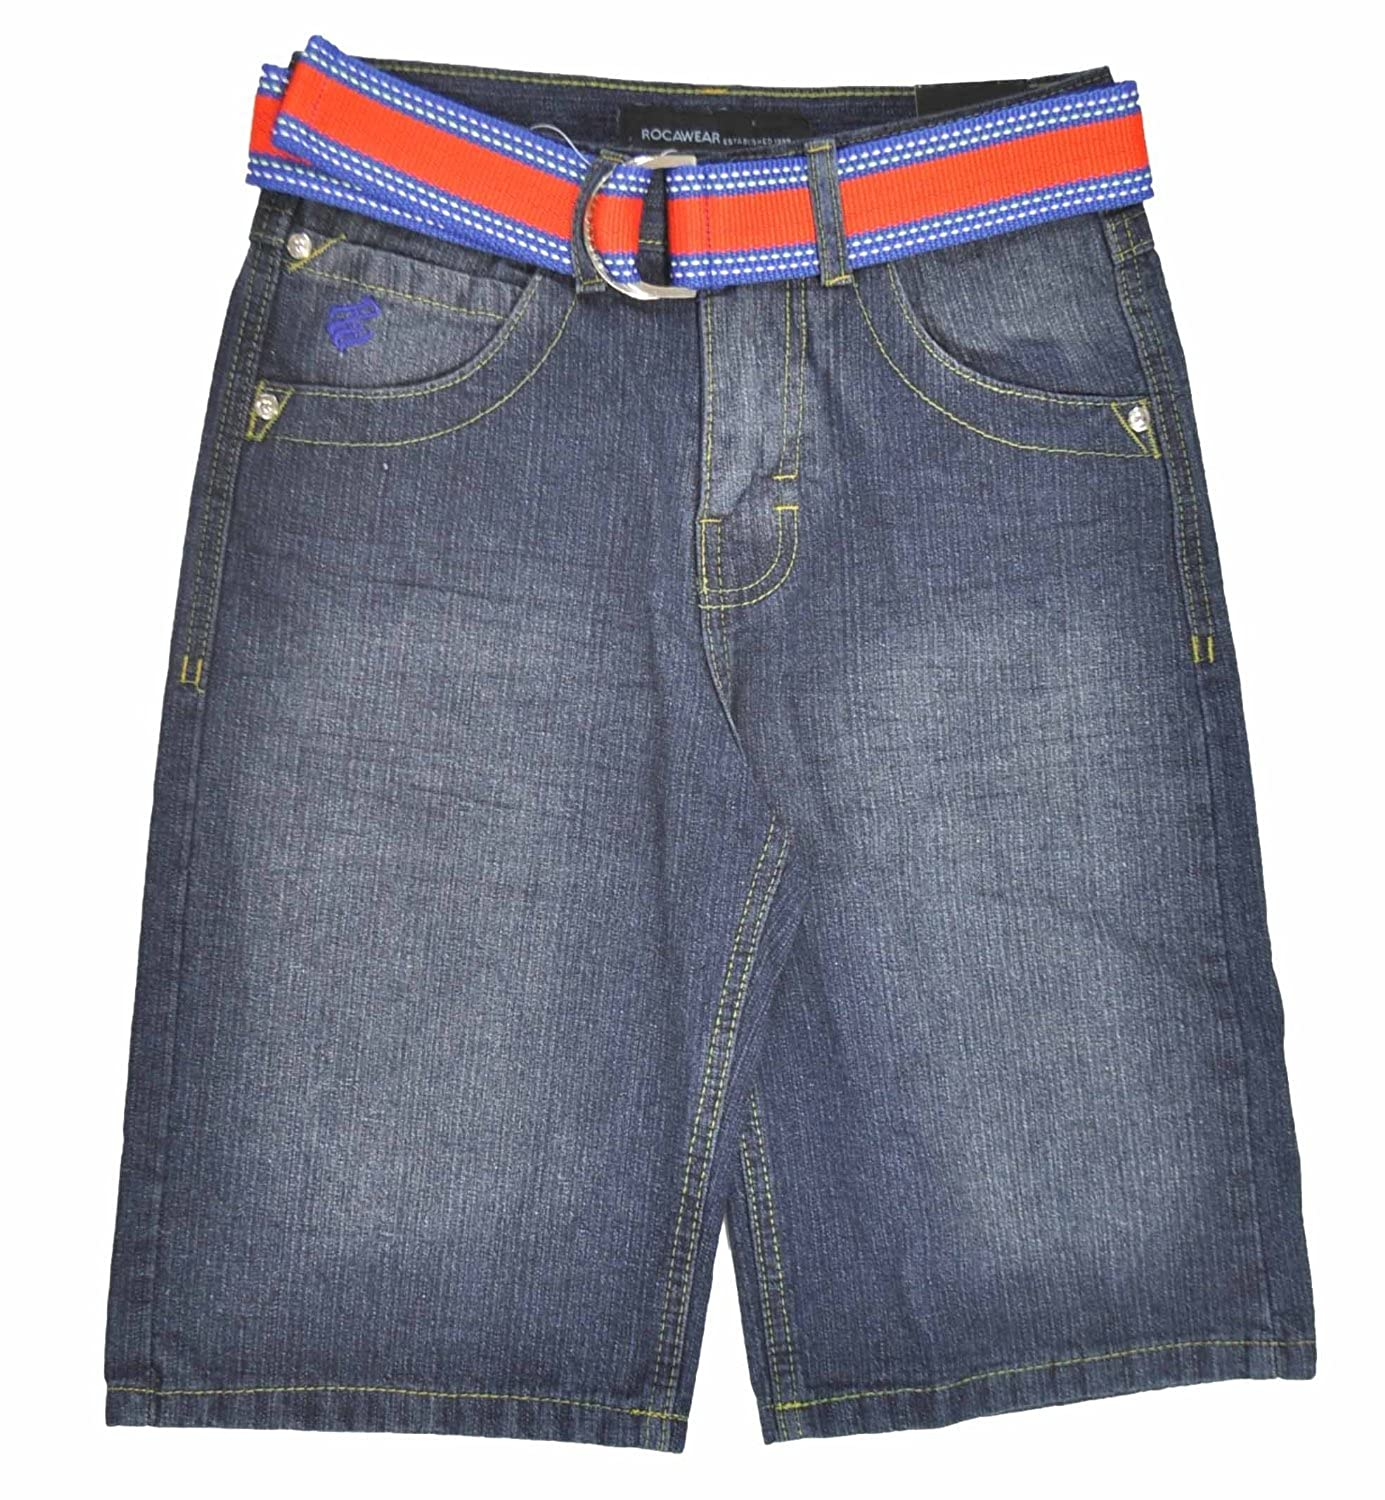 Rocawear Big Boys Indigo Denim Blue /& Orange W//Belt Short